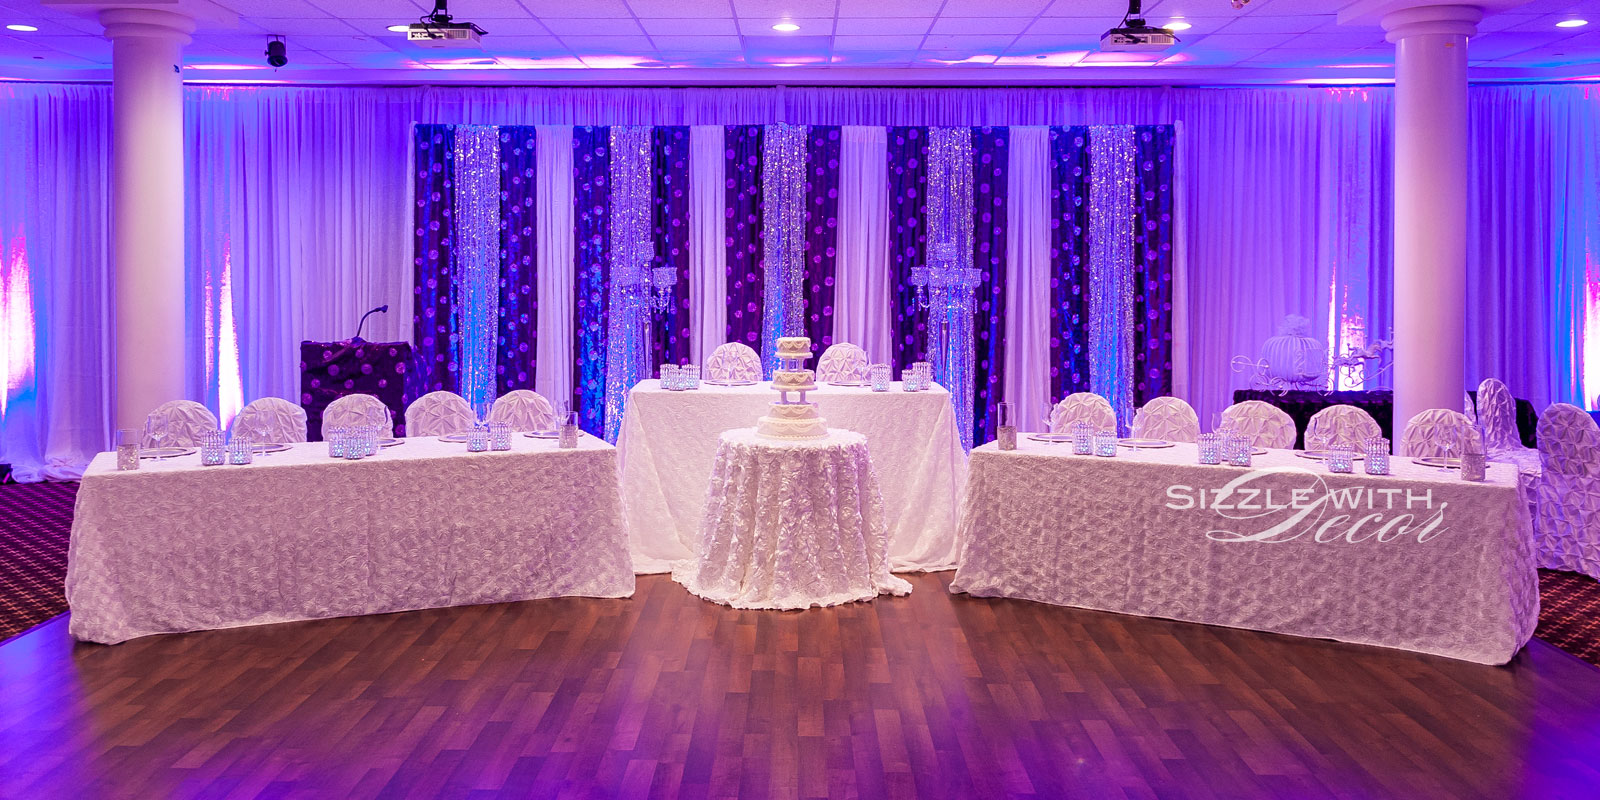 Sizzle with decor wedding and event decor ottawa sliderimagemarconi sliderimagemarconi junglespirit